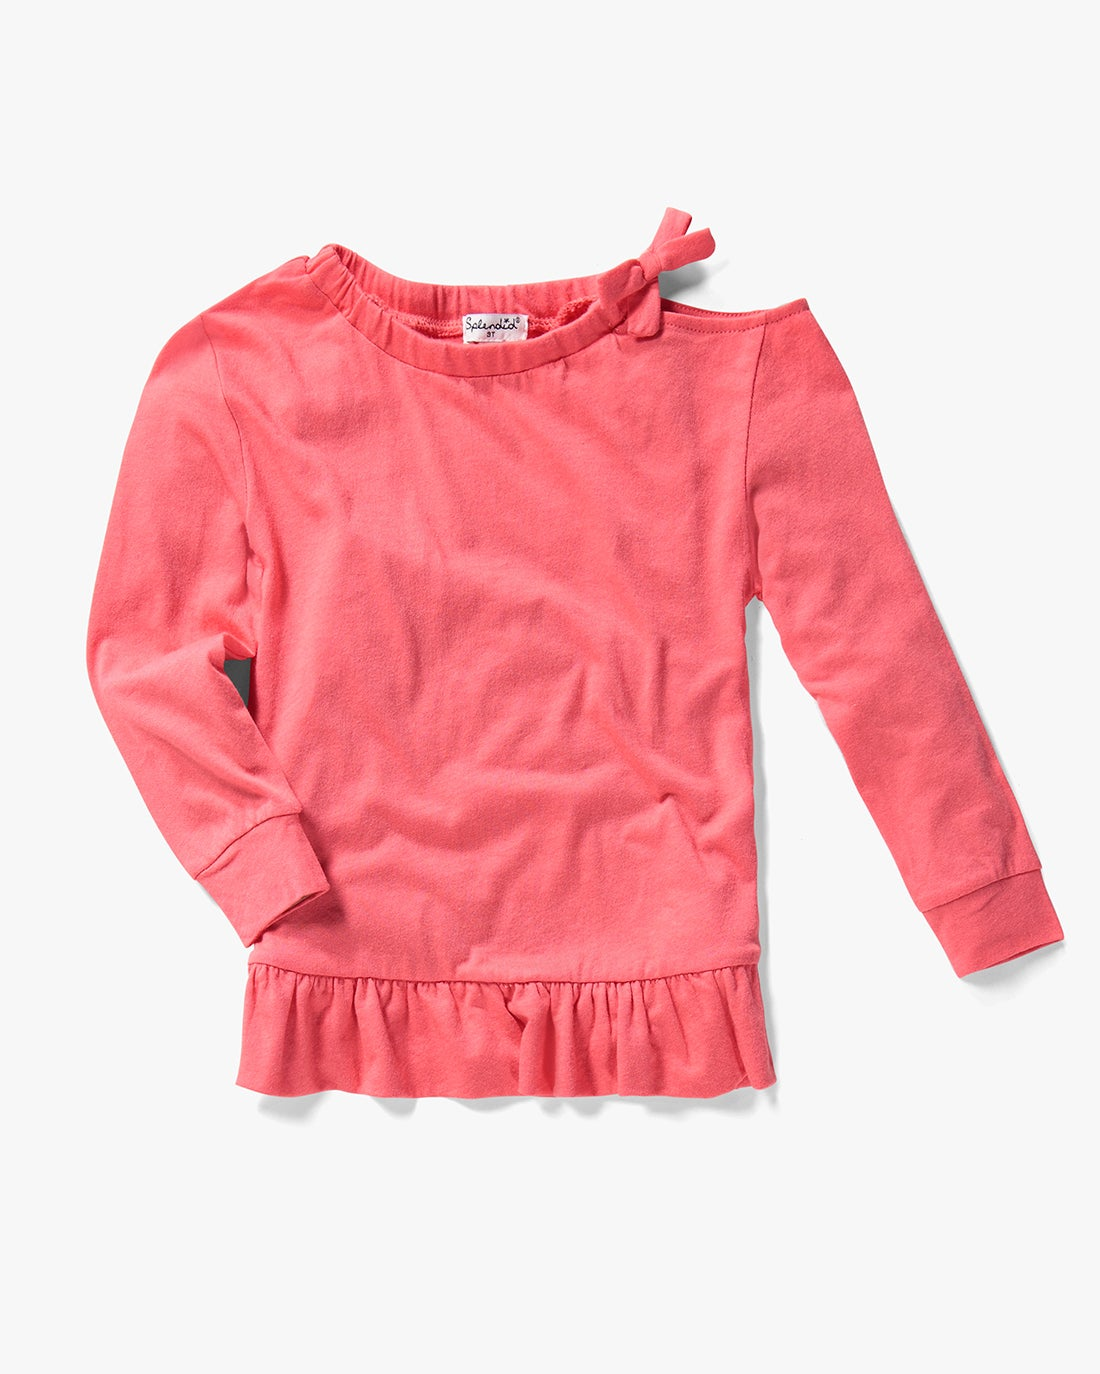 Splendid Little Girl Cold Shouler Top Set